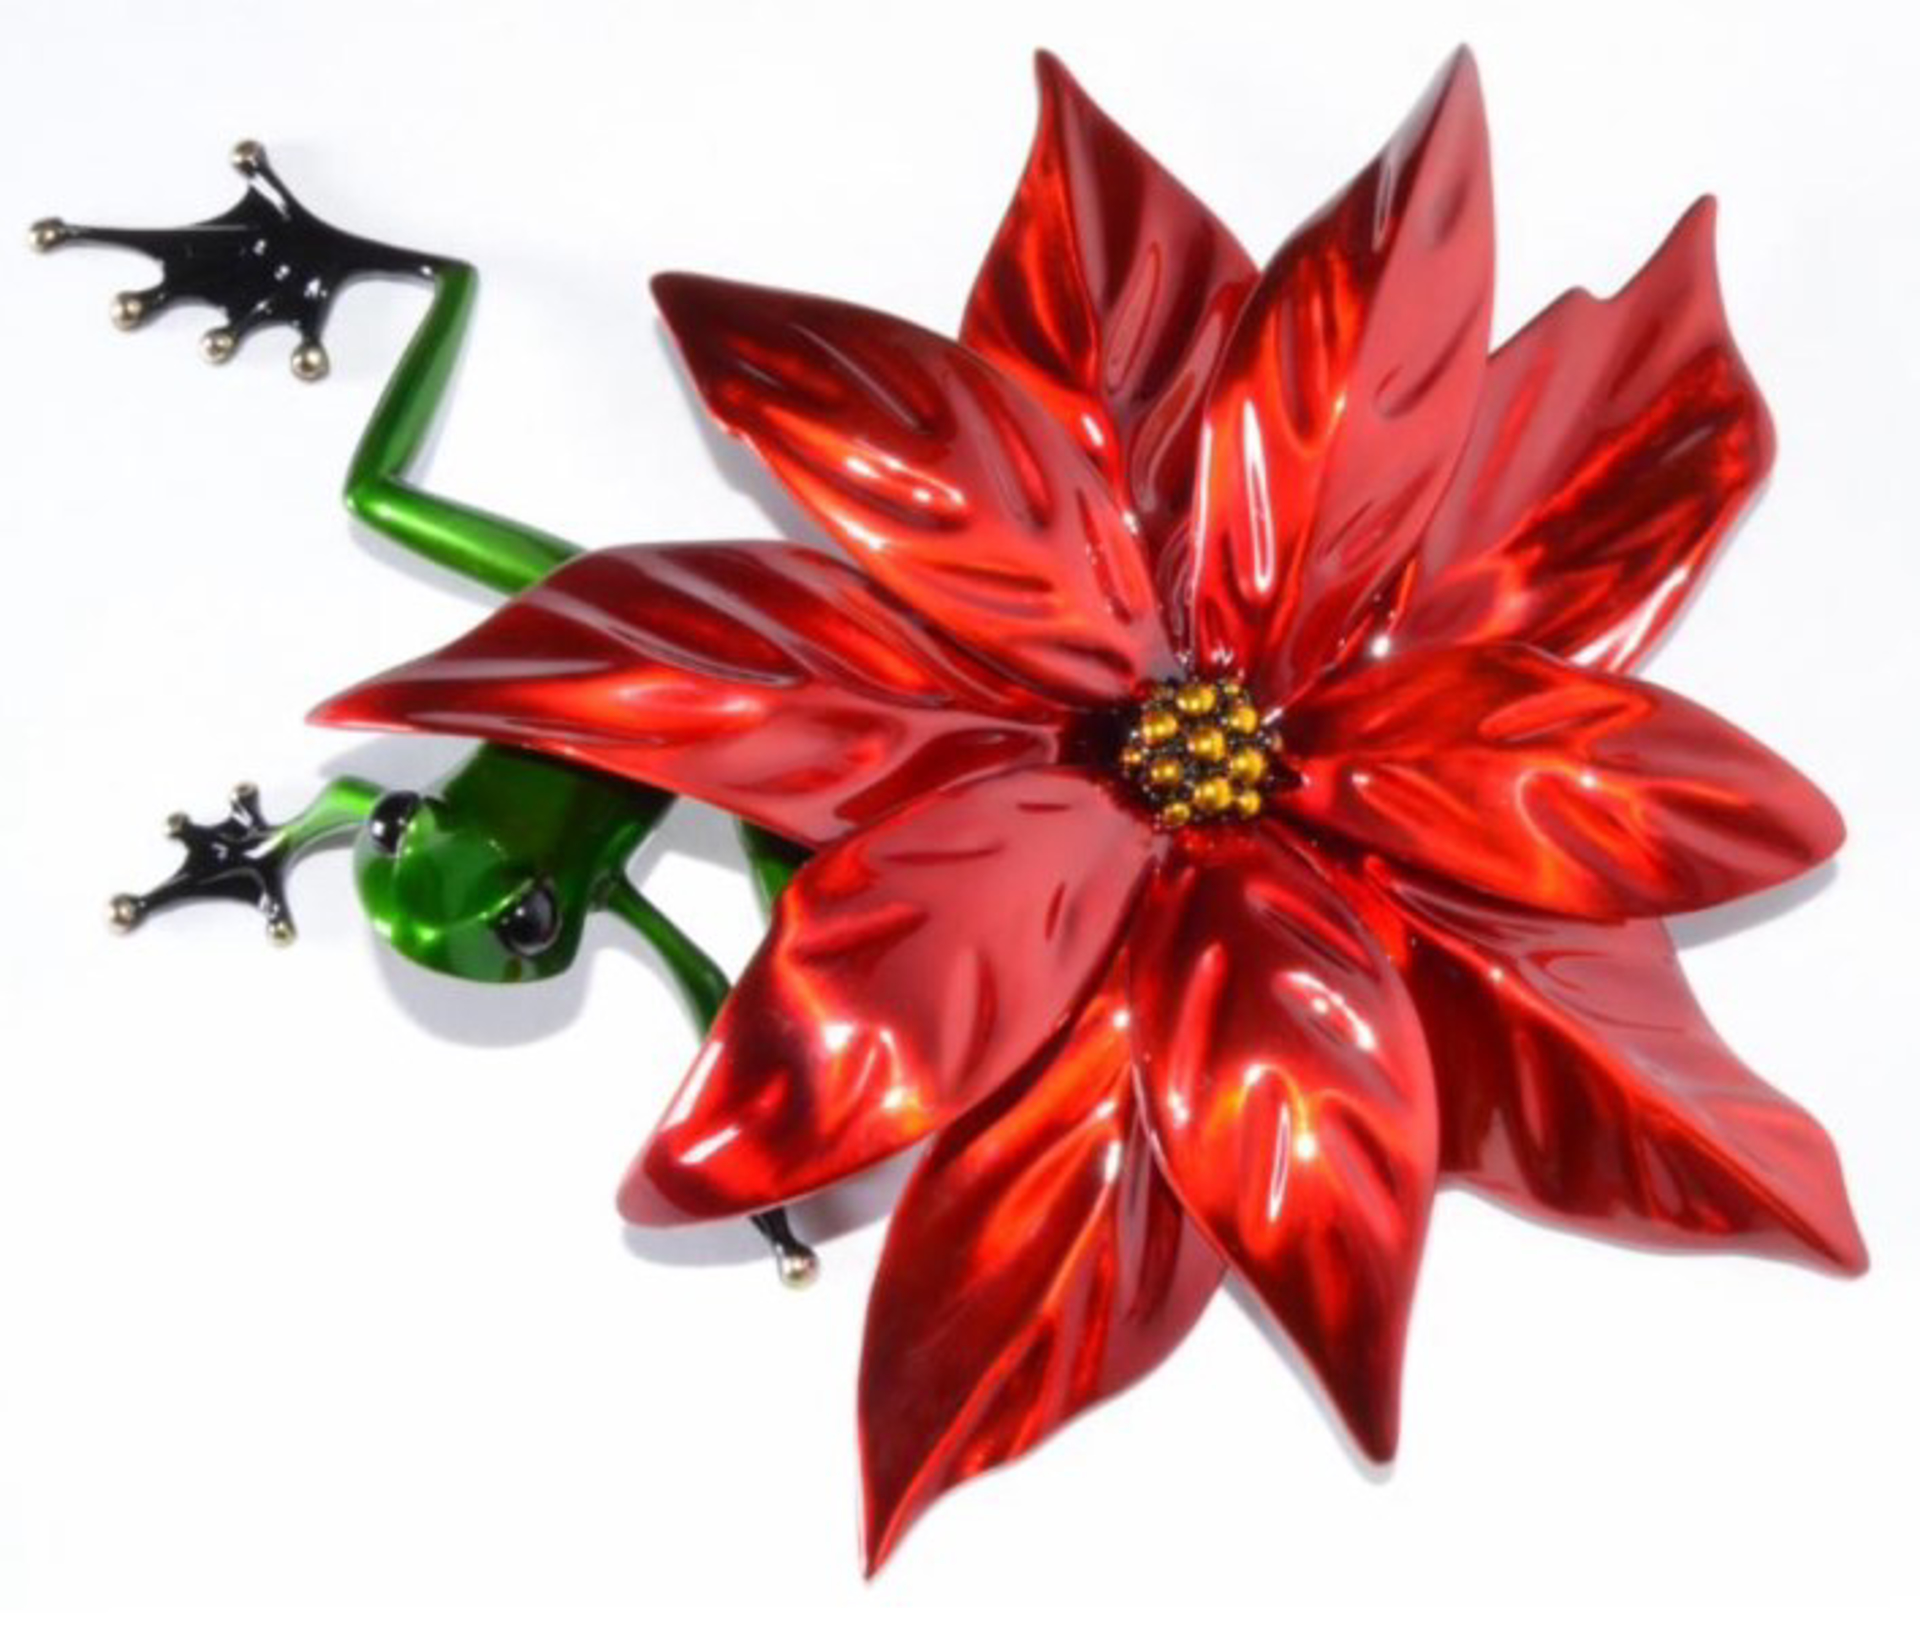 Poinsettia by The Frogman